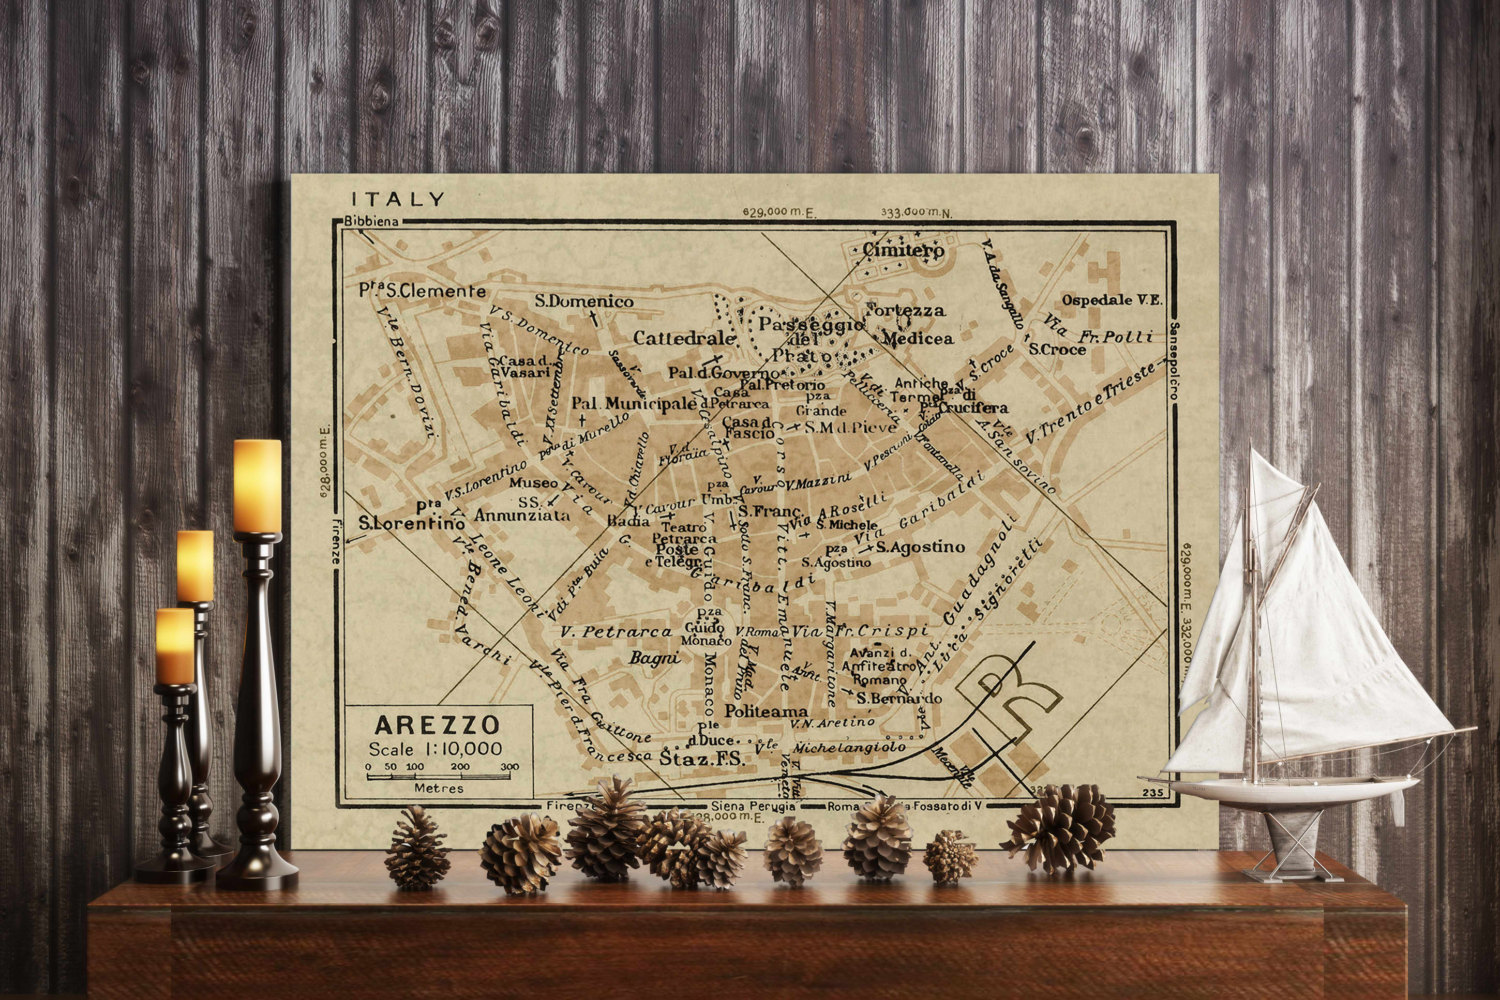 Old map of arezzo italy 1935 arezzo map up to 24x36 old world style old map of arezzo italy 1935 arezzo map up to 24x36 old world style arezzo italy wall map fine art print gumiabroncs Choice Image